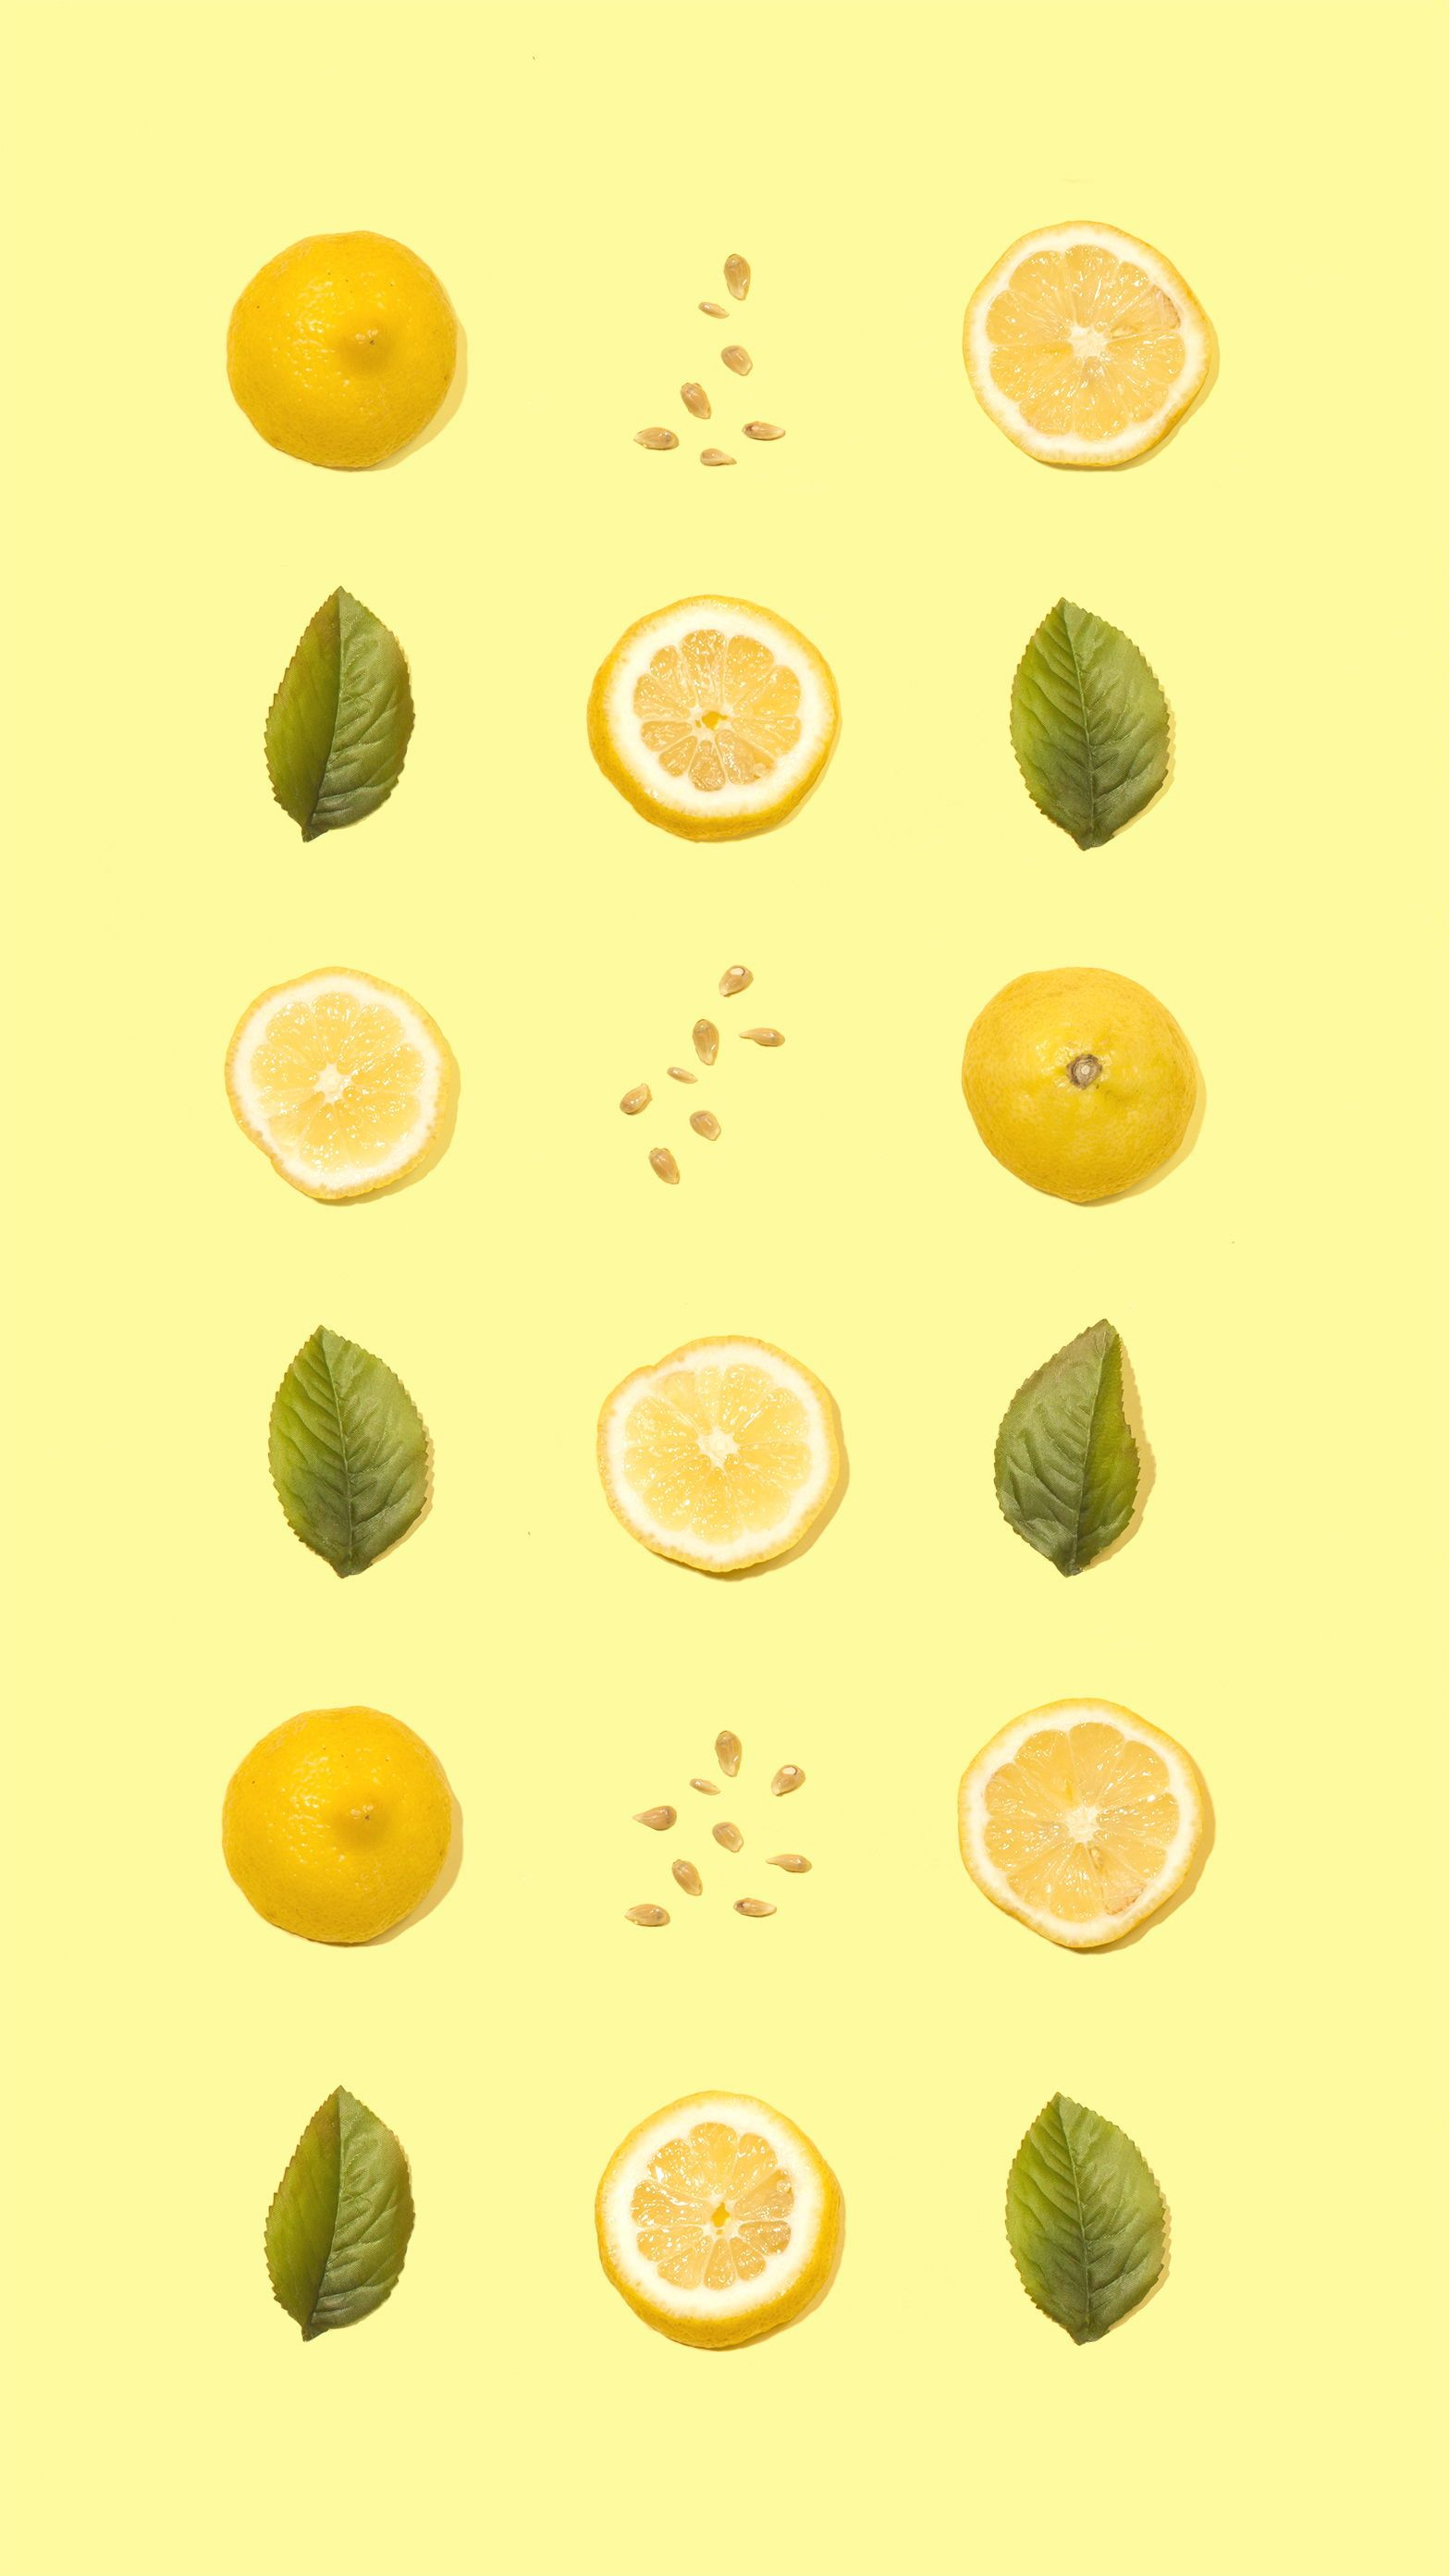 Yellow Lemons Pattern Amy Shamblen Iphone Wallpaper Yellow